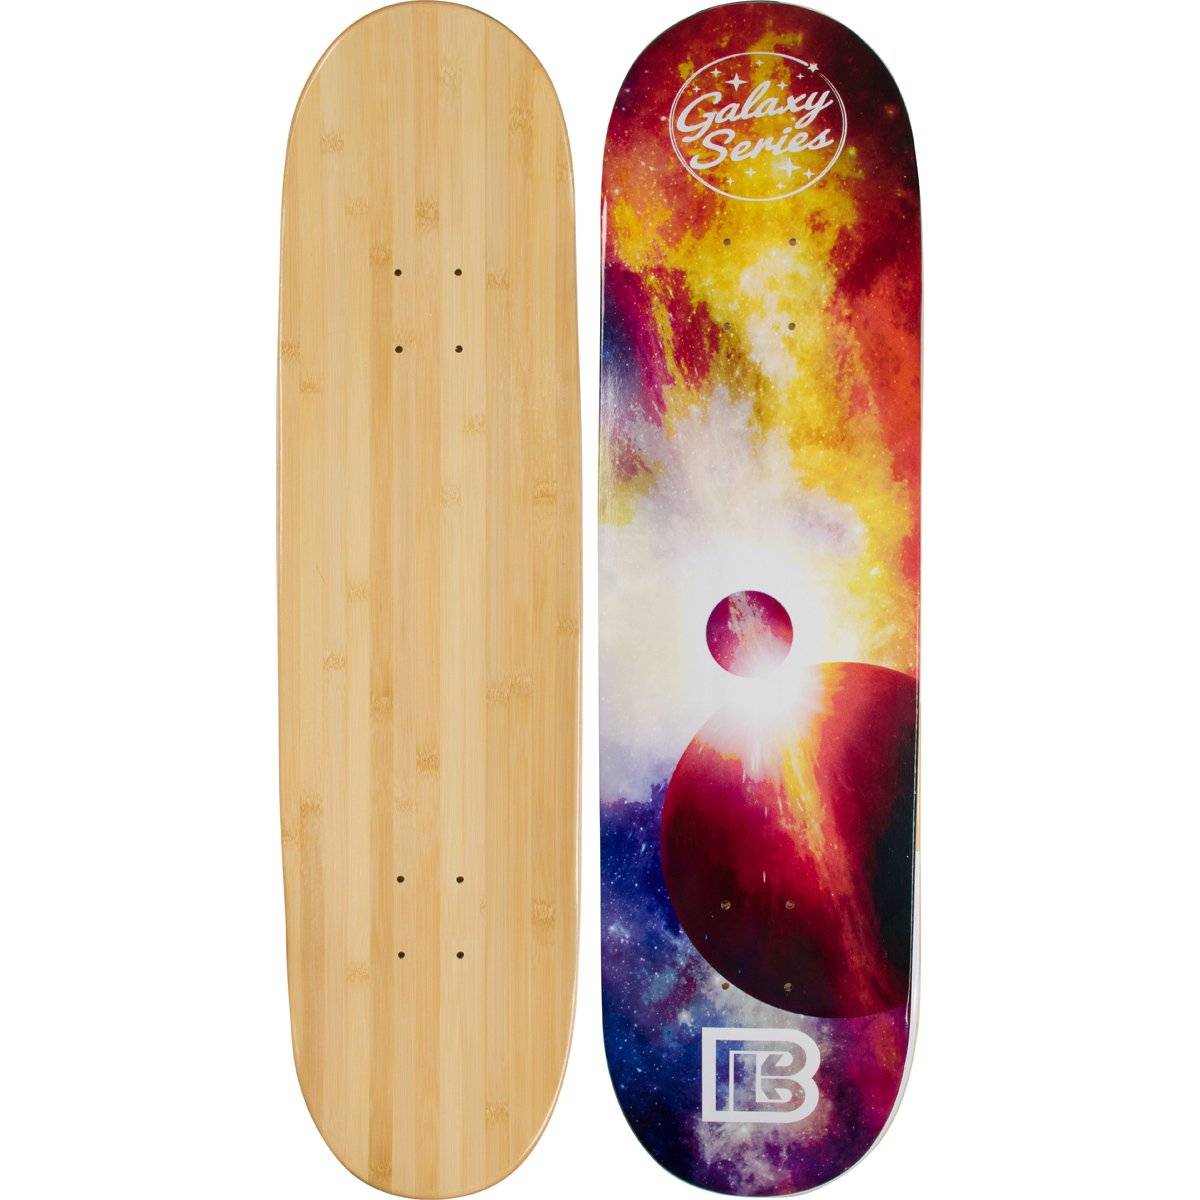 Bamboo Skateboards Galaxy Series: Eclipse Skateboard Deck (8.0'')